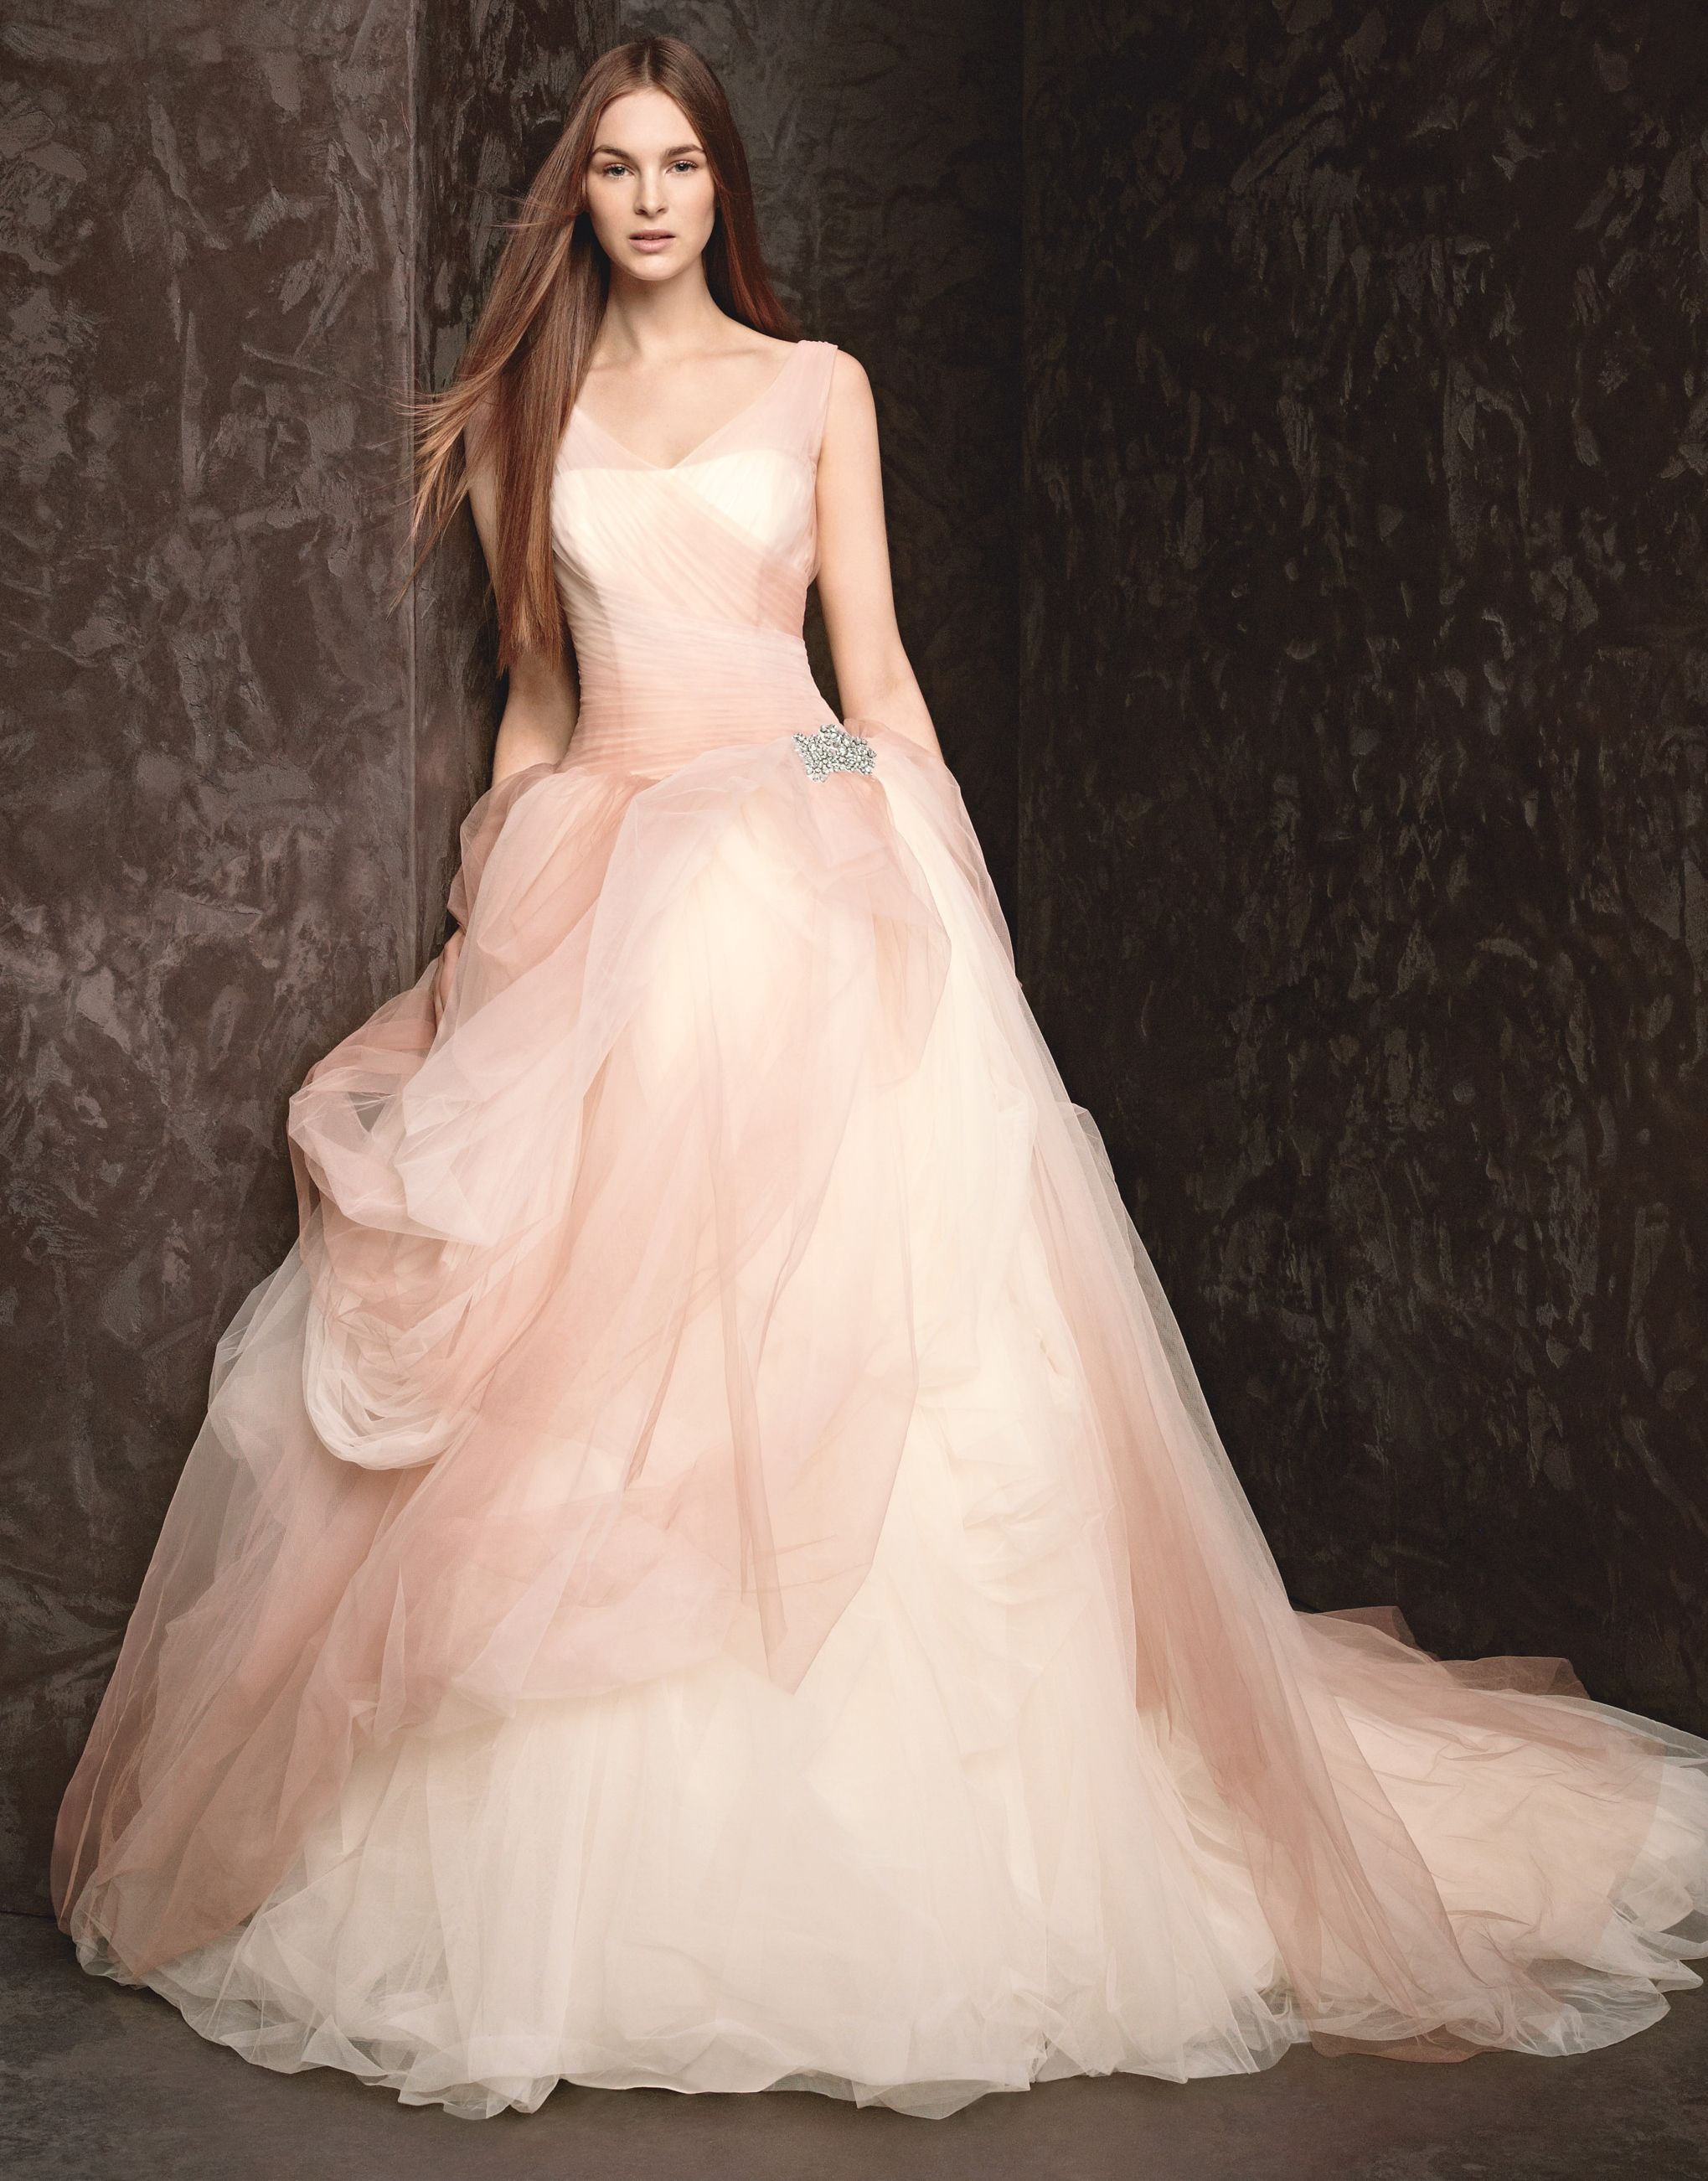 say yes to the dress pink floral mermaid dress | wedding dress, pink ...